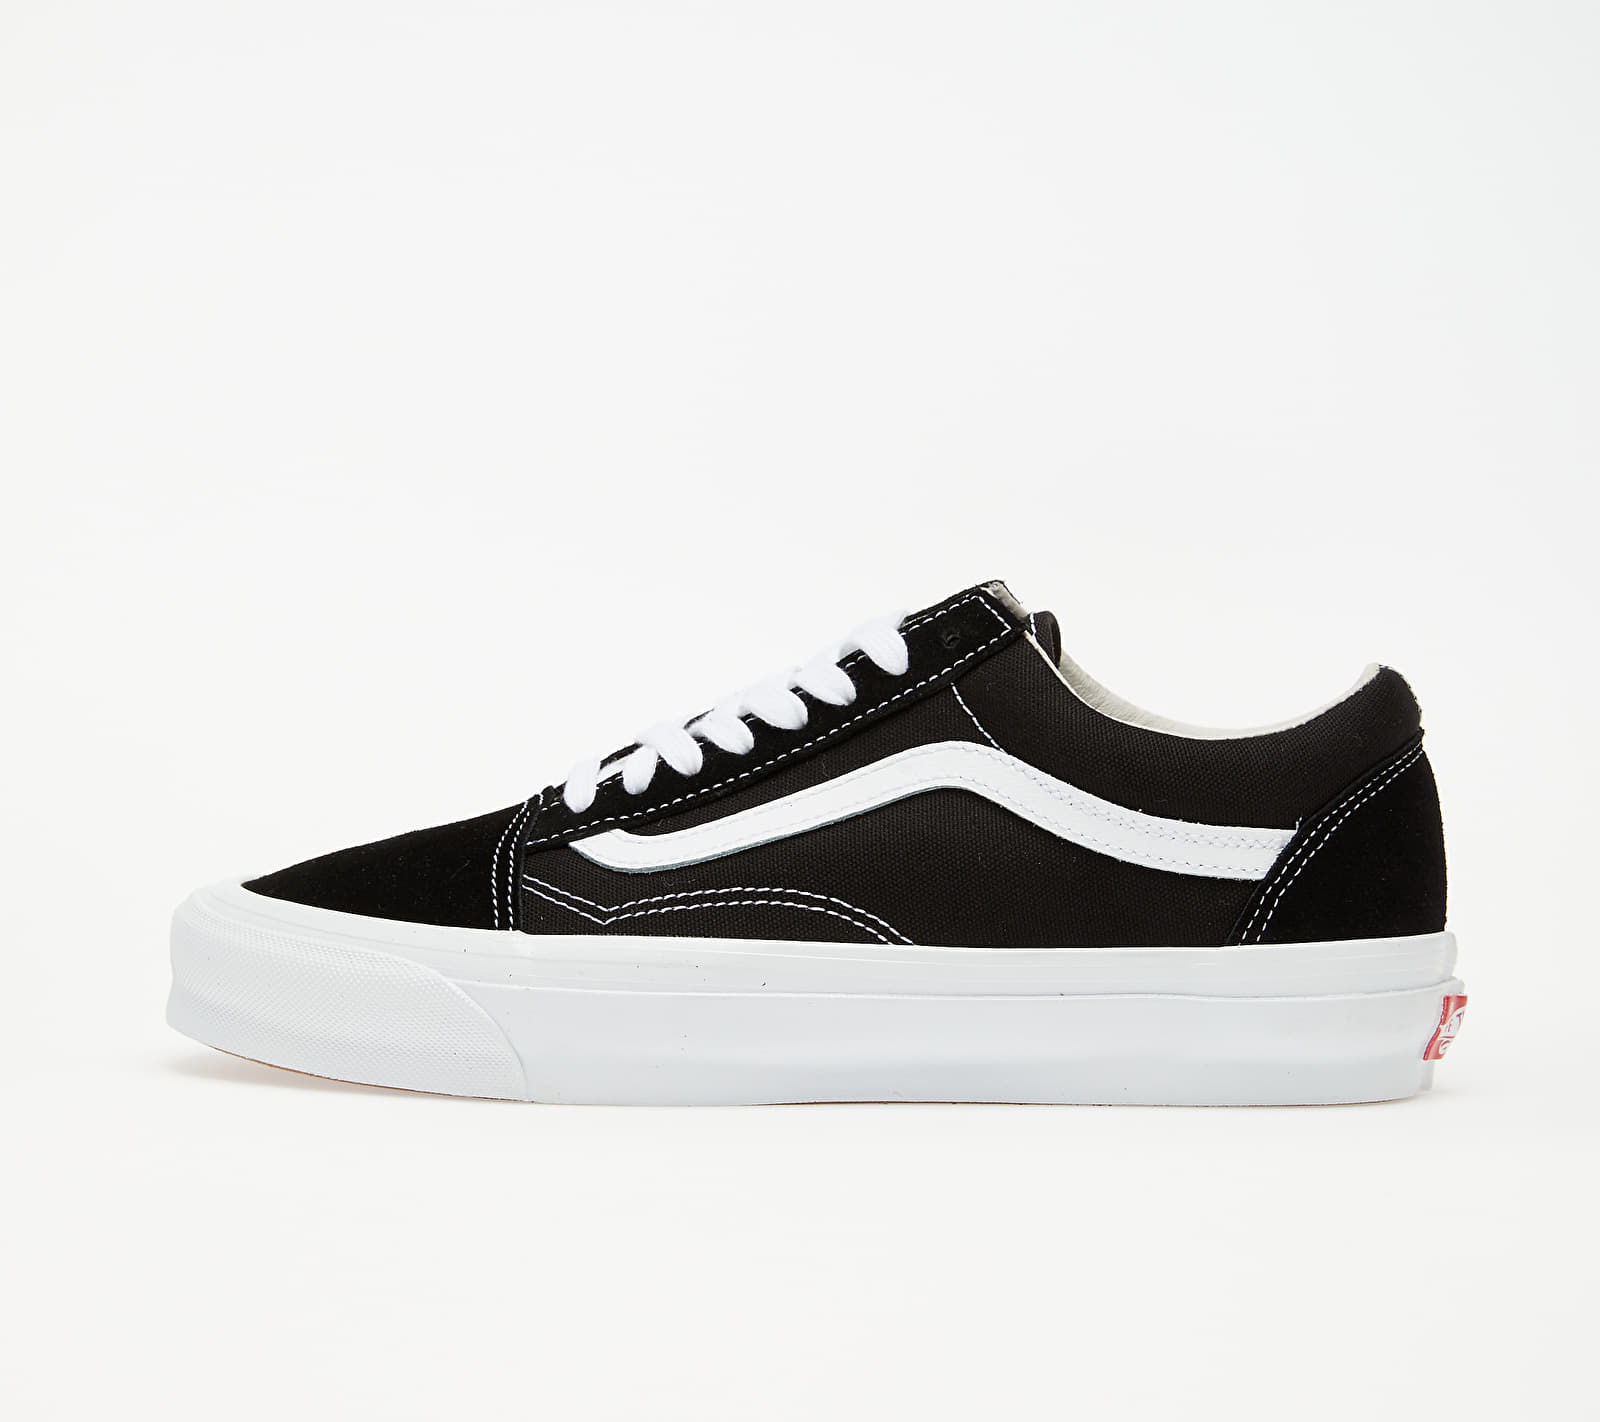 Vans OG Old Skool LX (Suede/ Canvas) Black VN0A4P3XOIU1